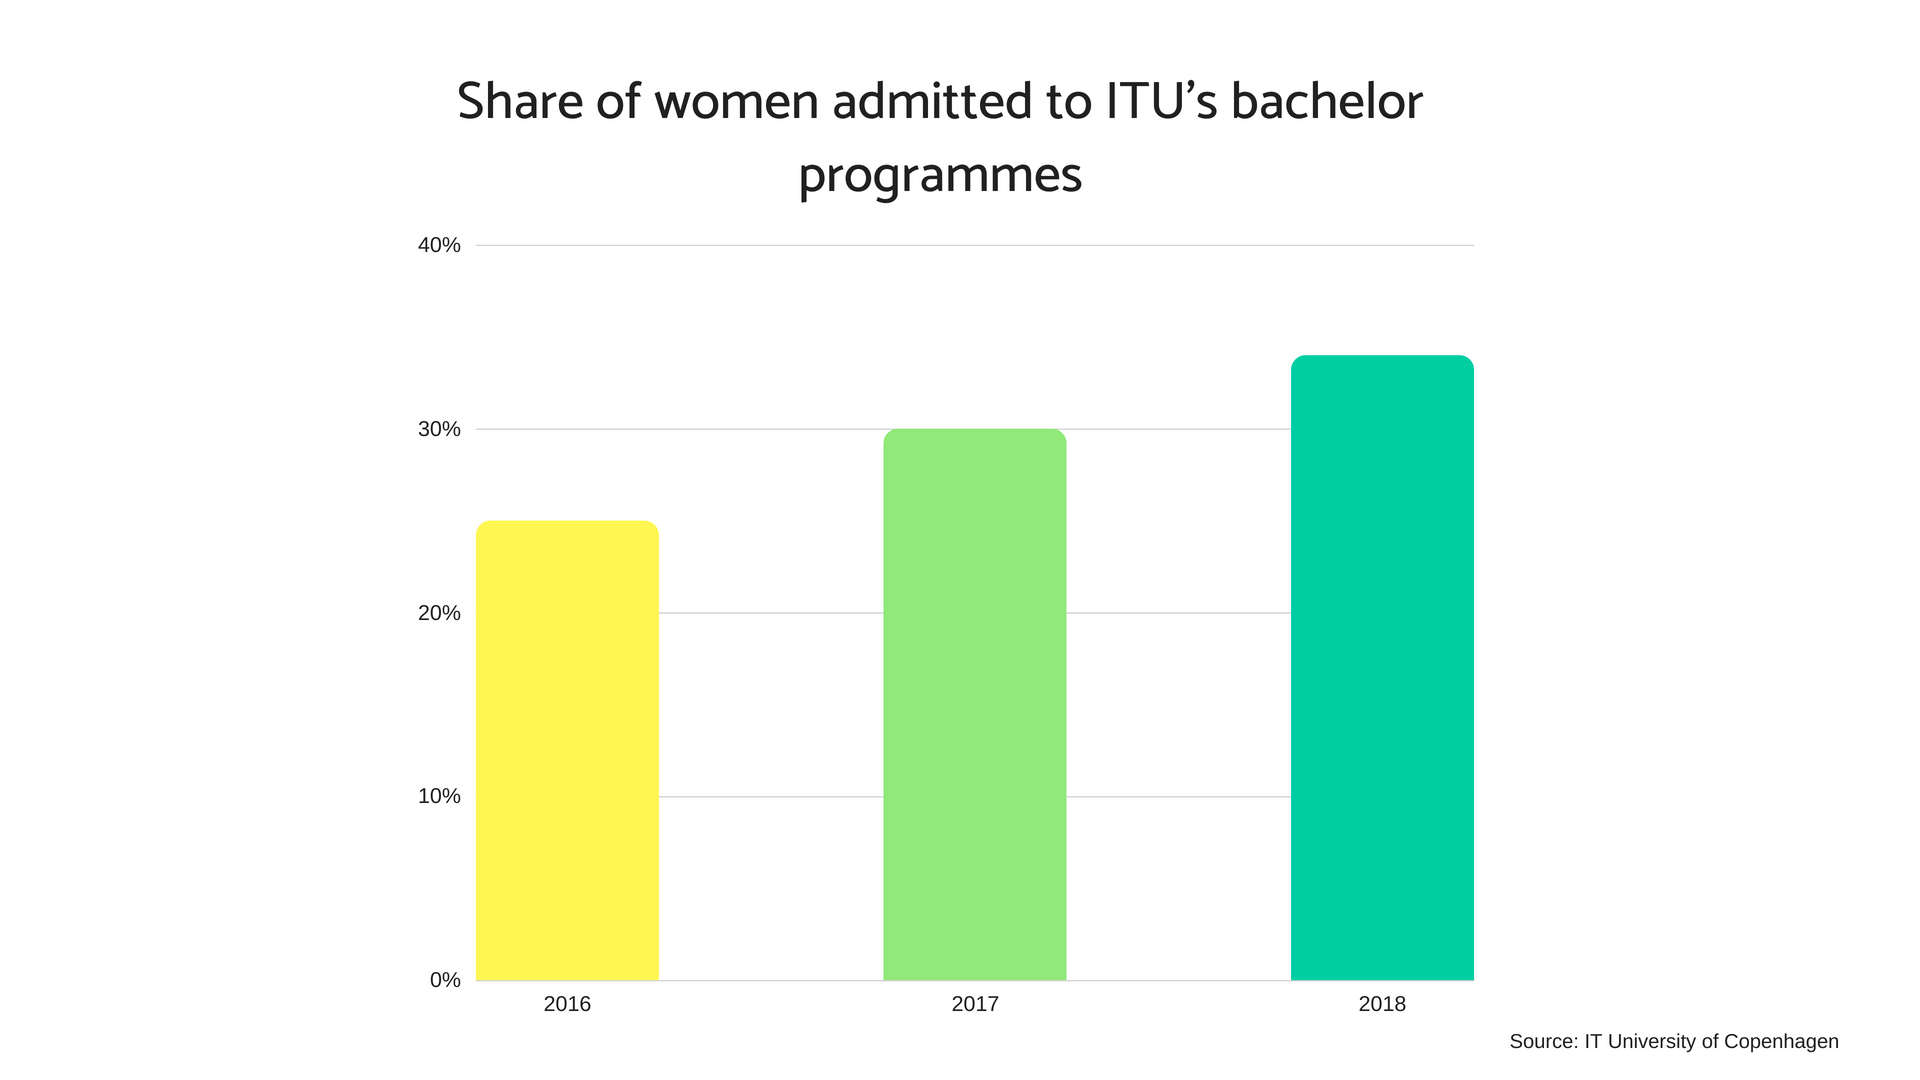 Share of women admitted to ITU.